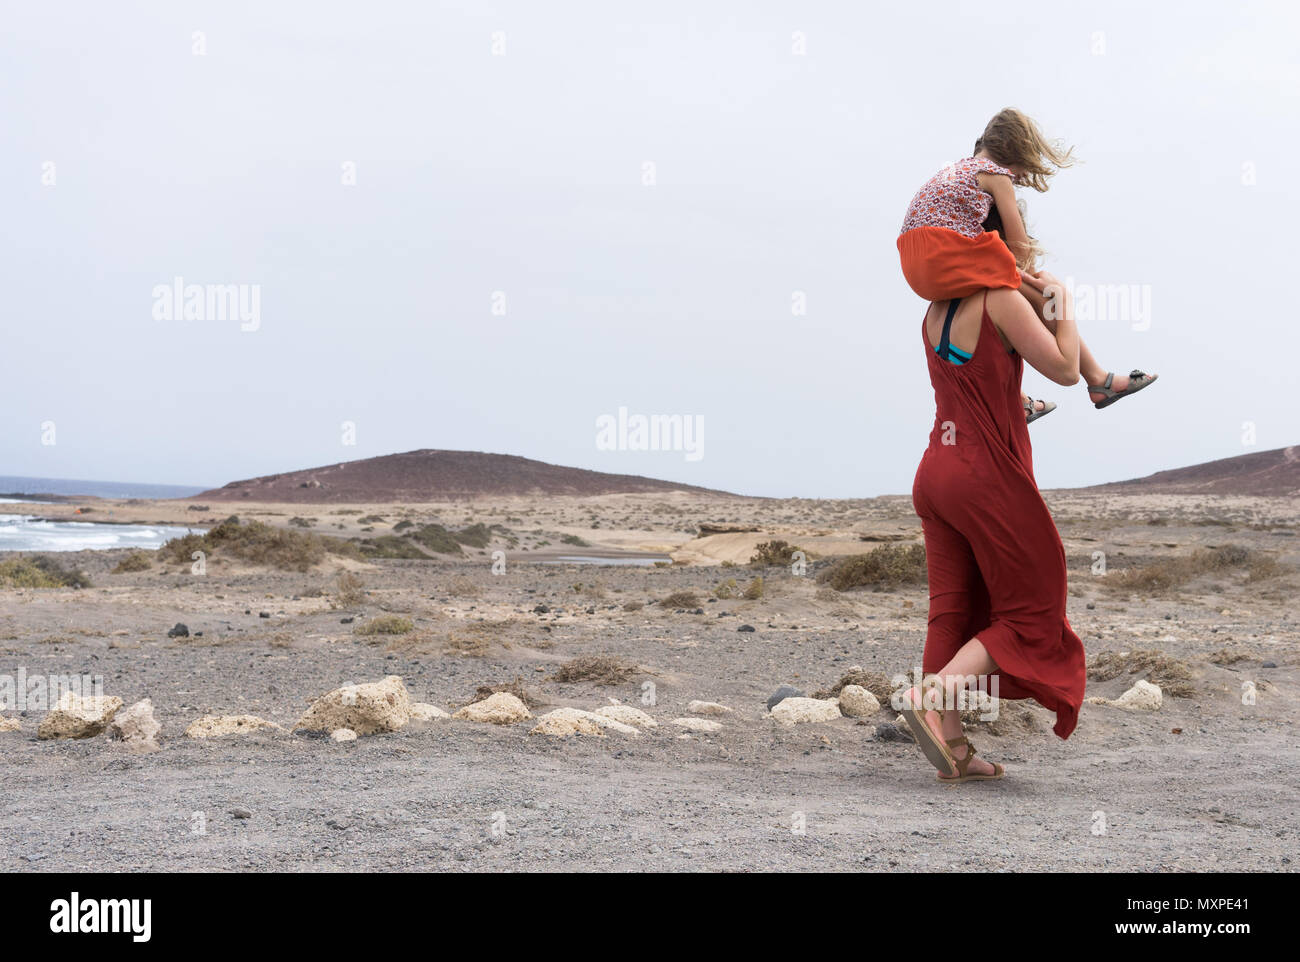 Mother carrying daughter on shoulders on rugged terrain by the beach - Stock Image